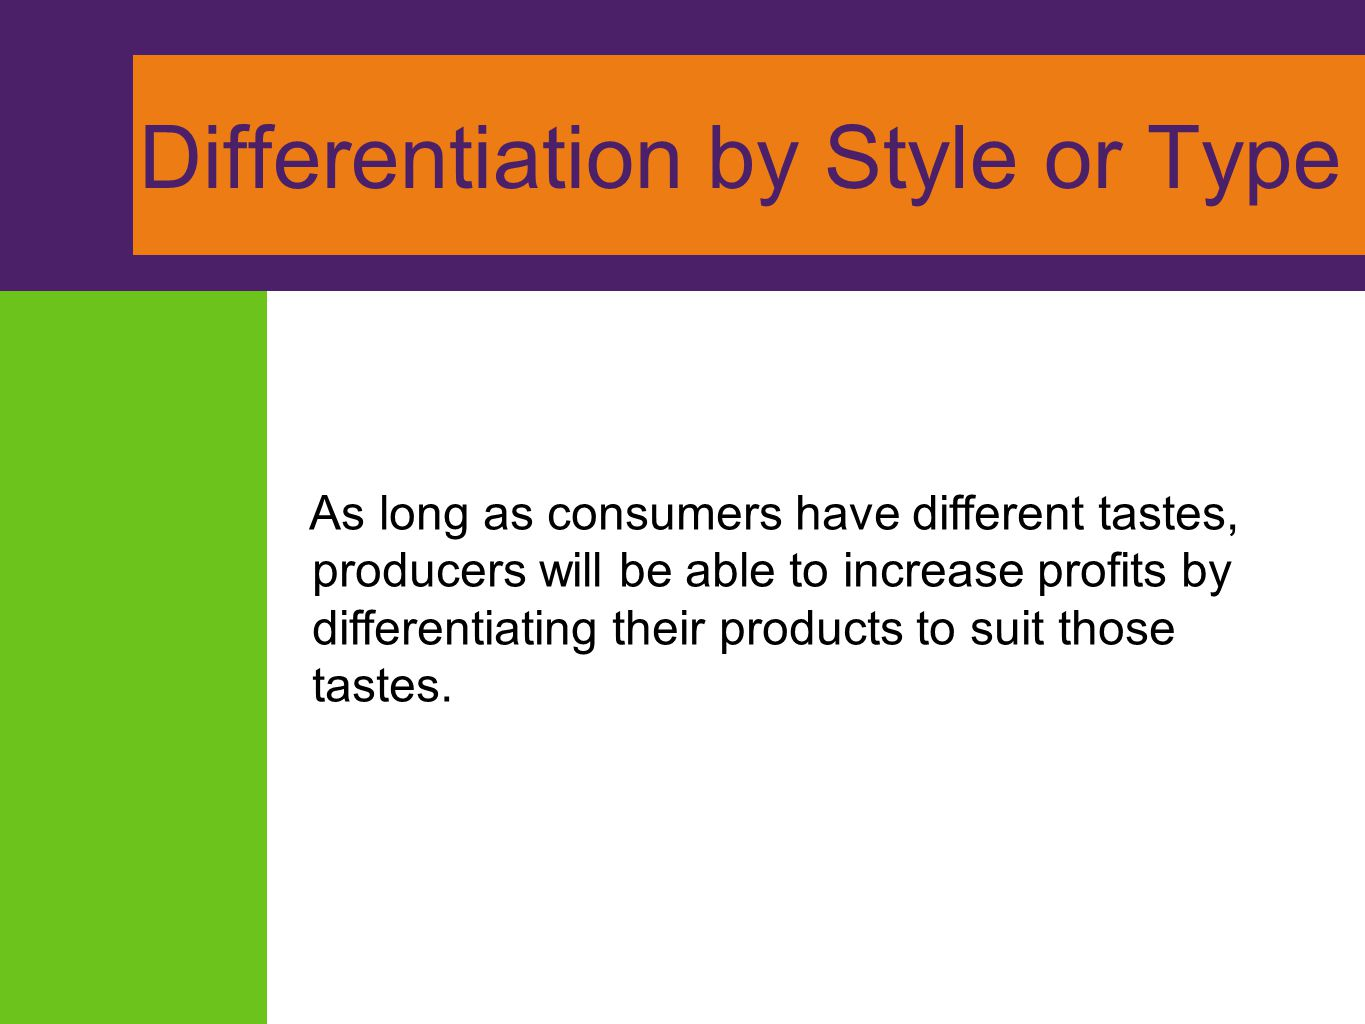 Differentiation by Style or Type